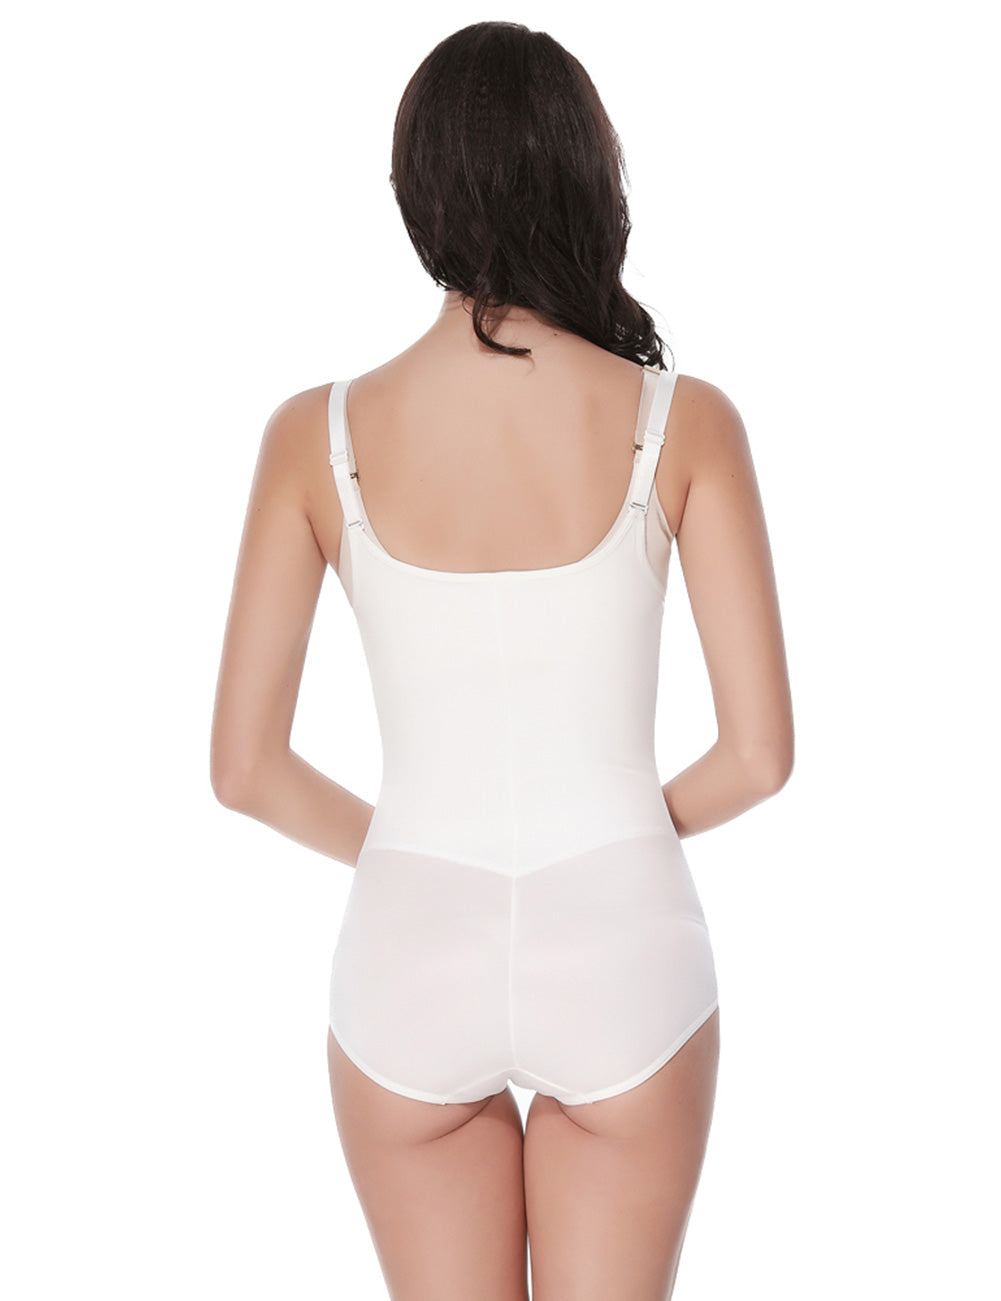 Fabulous Fit Hook Eyes Underbust White Body Shaping Corset Super Sexy